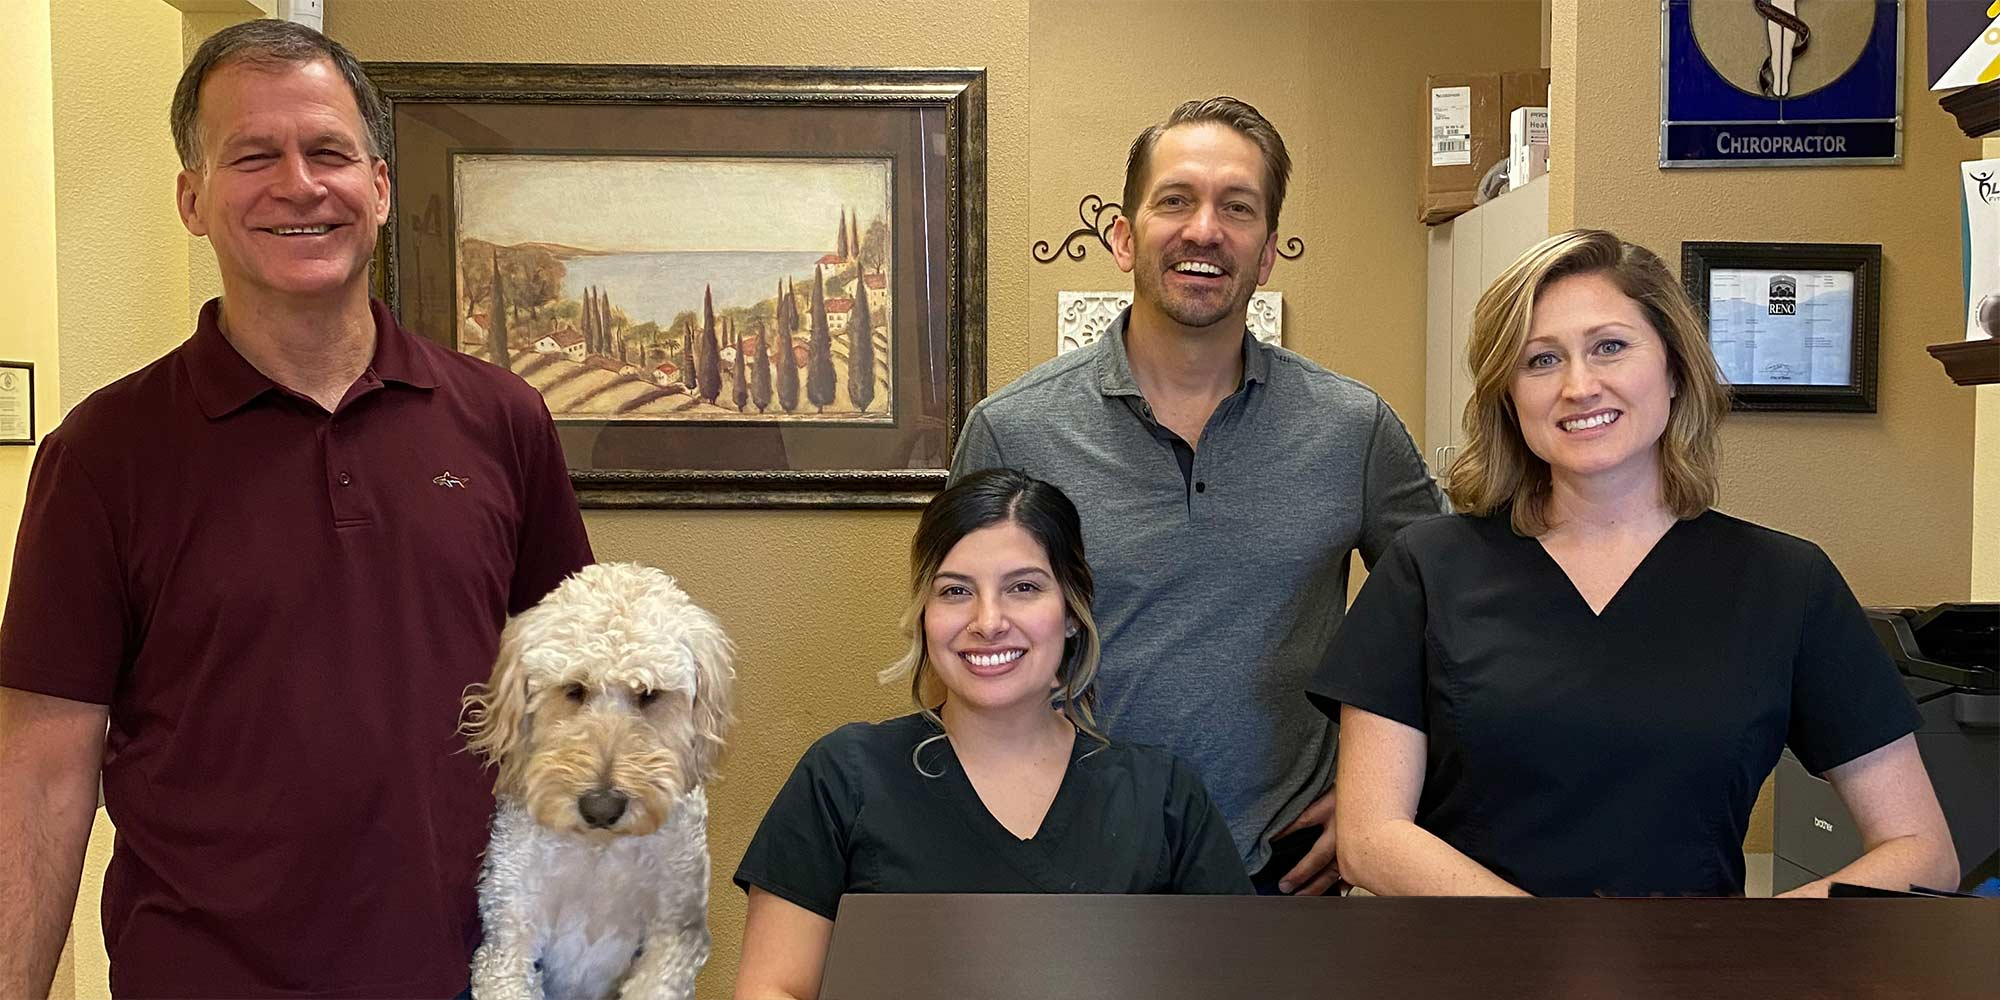 Chiropractor Reno NV David Berg and His Team with Dog